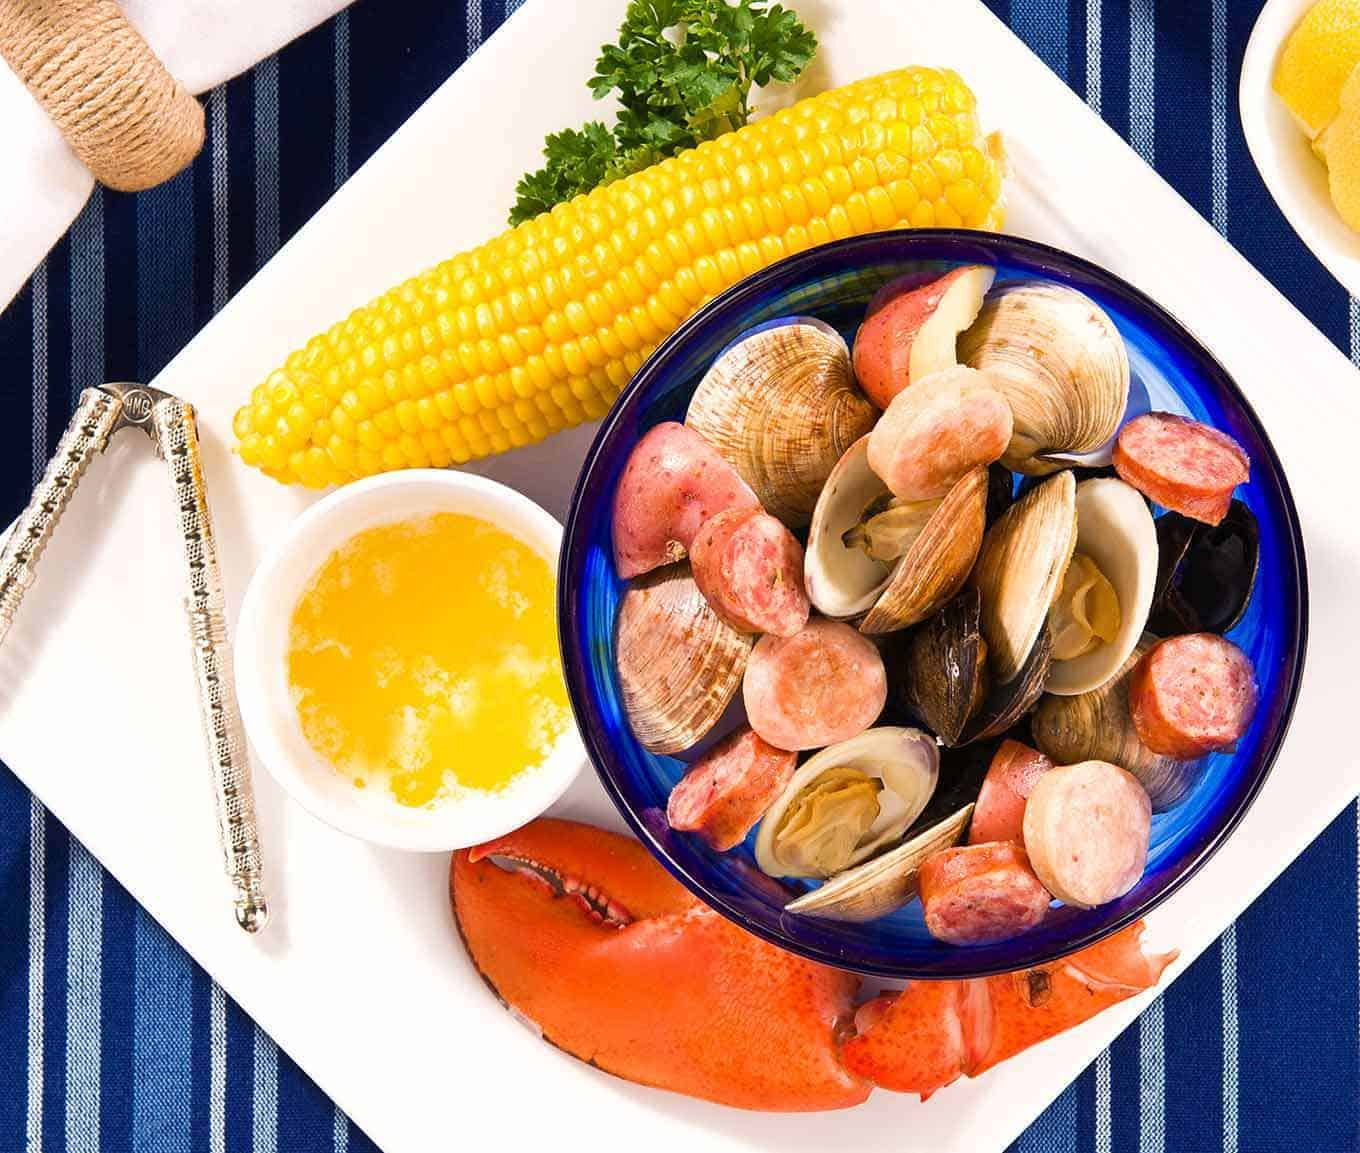 Plate containing lobster claw, ear of corn, bowl of melted butter, nutcracker, and bowl of steamed clams, mussels, sausage, and potatoes.